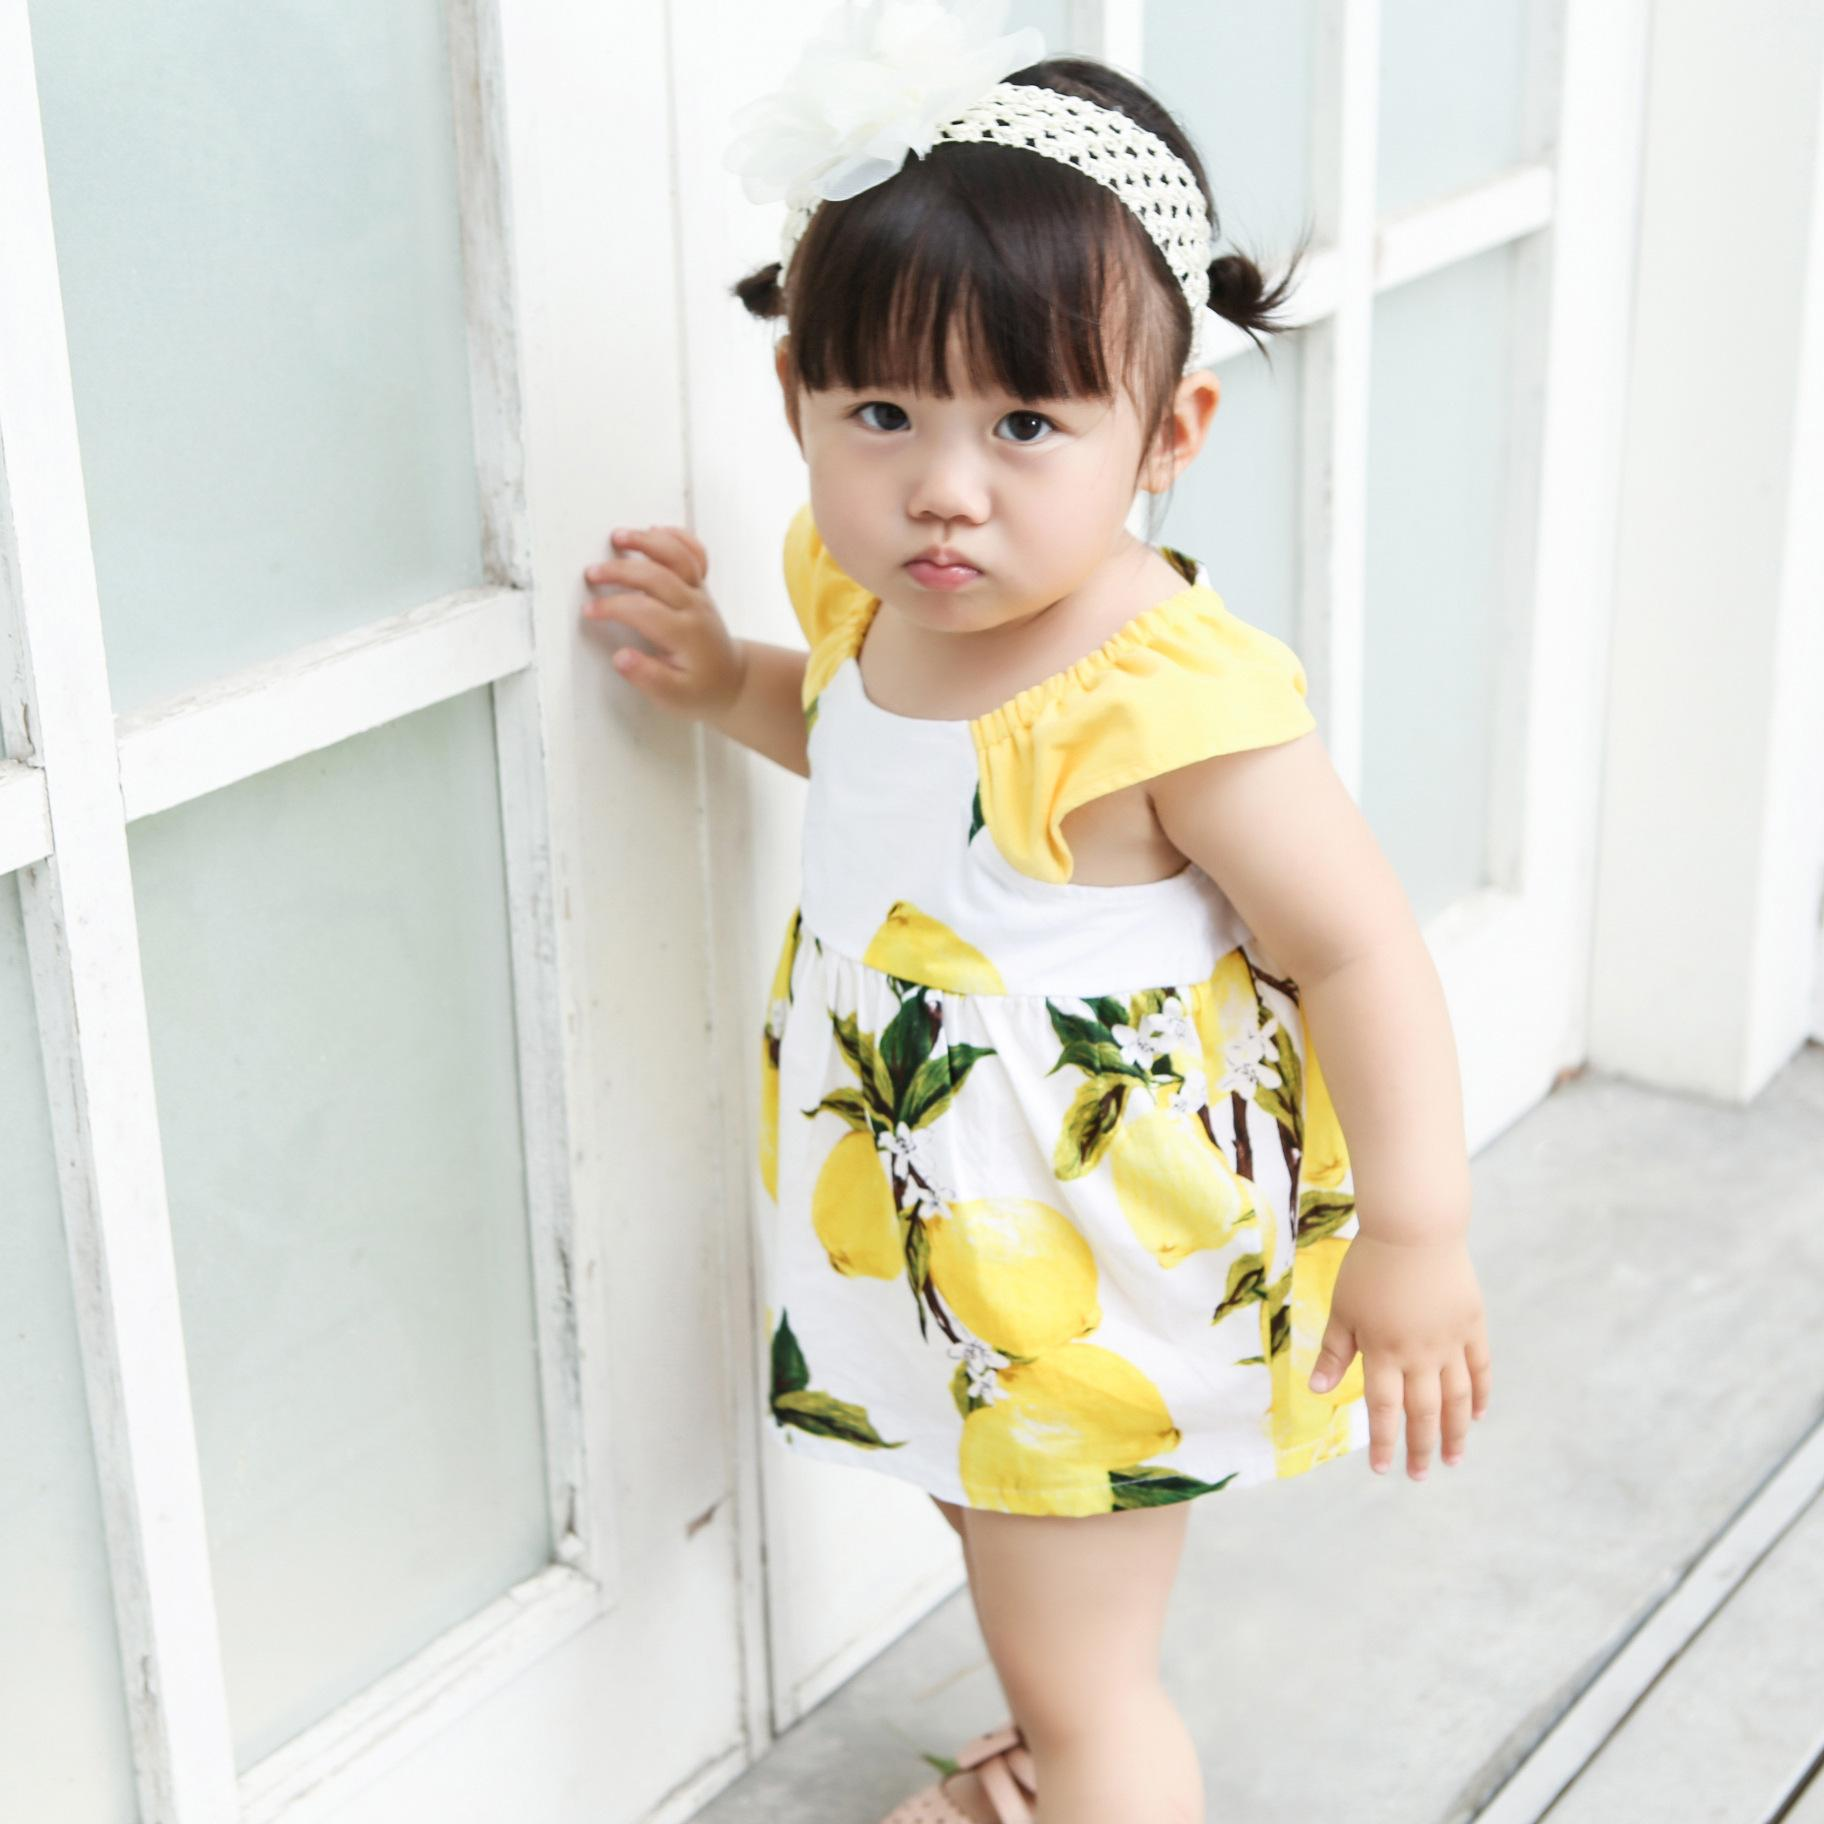 d37154a1ae6c 2019 Baby Girl Infant Clothing Sets Suit Princess Tutu Romper Dress Jumpsuit  With Hat Bebe Party Birthday Costumes Vestido From Usefully18